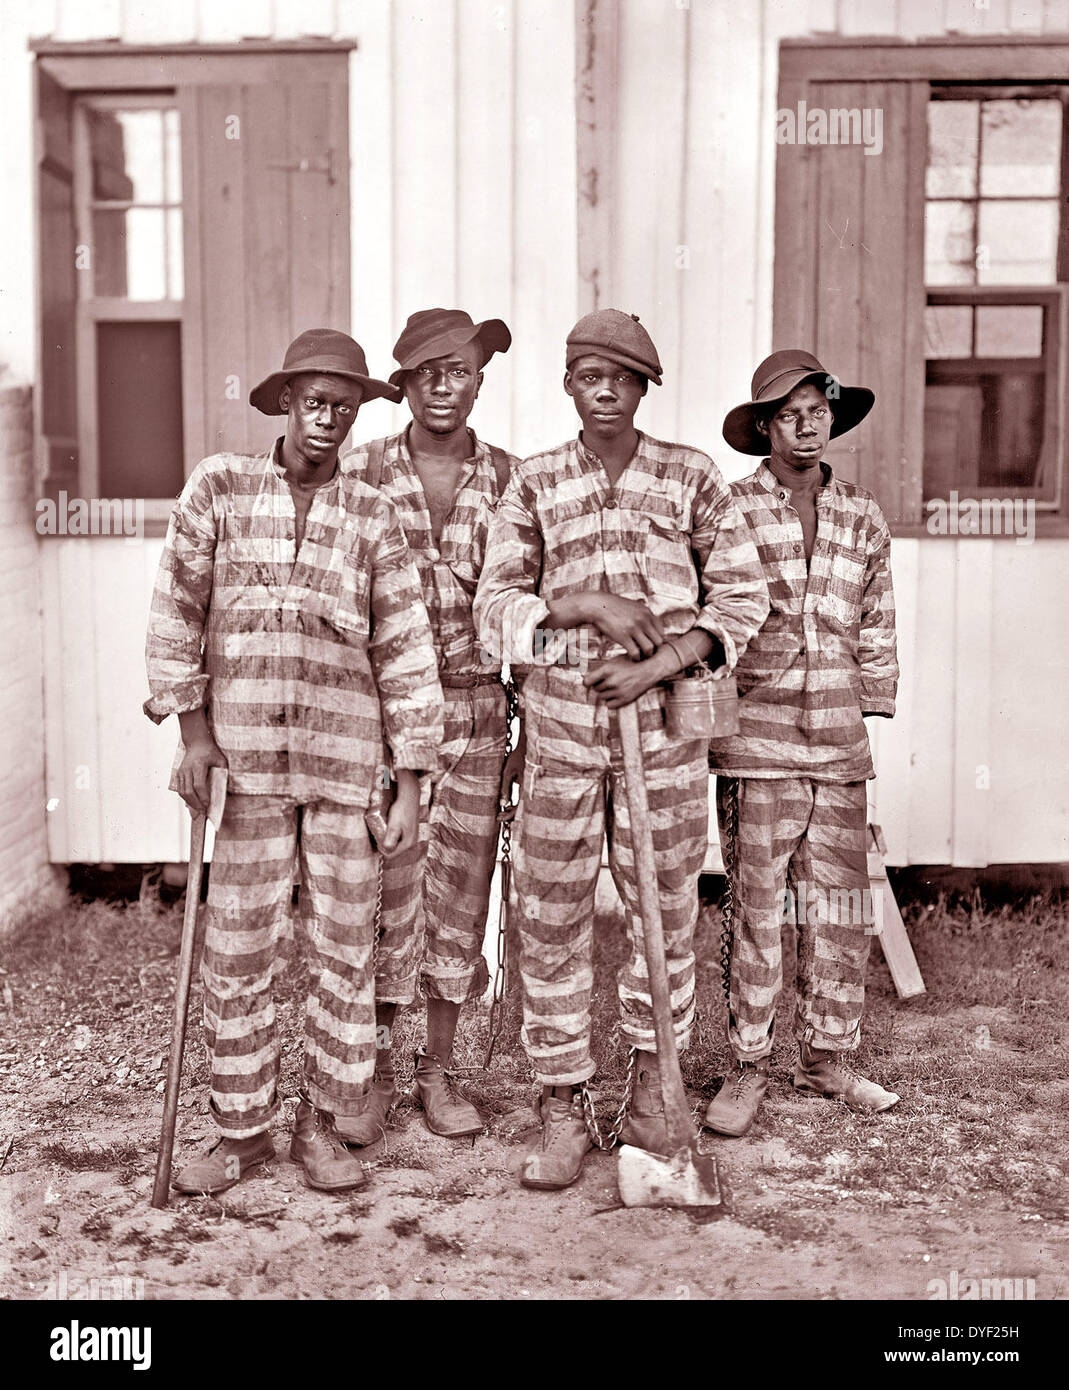 A chain gang from the southern states of the USA 1905 Stock Photo